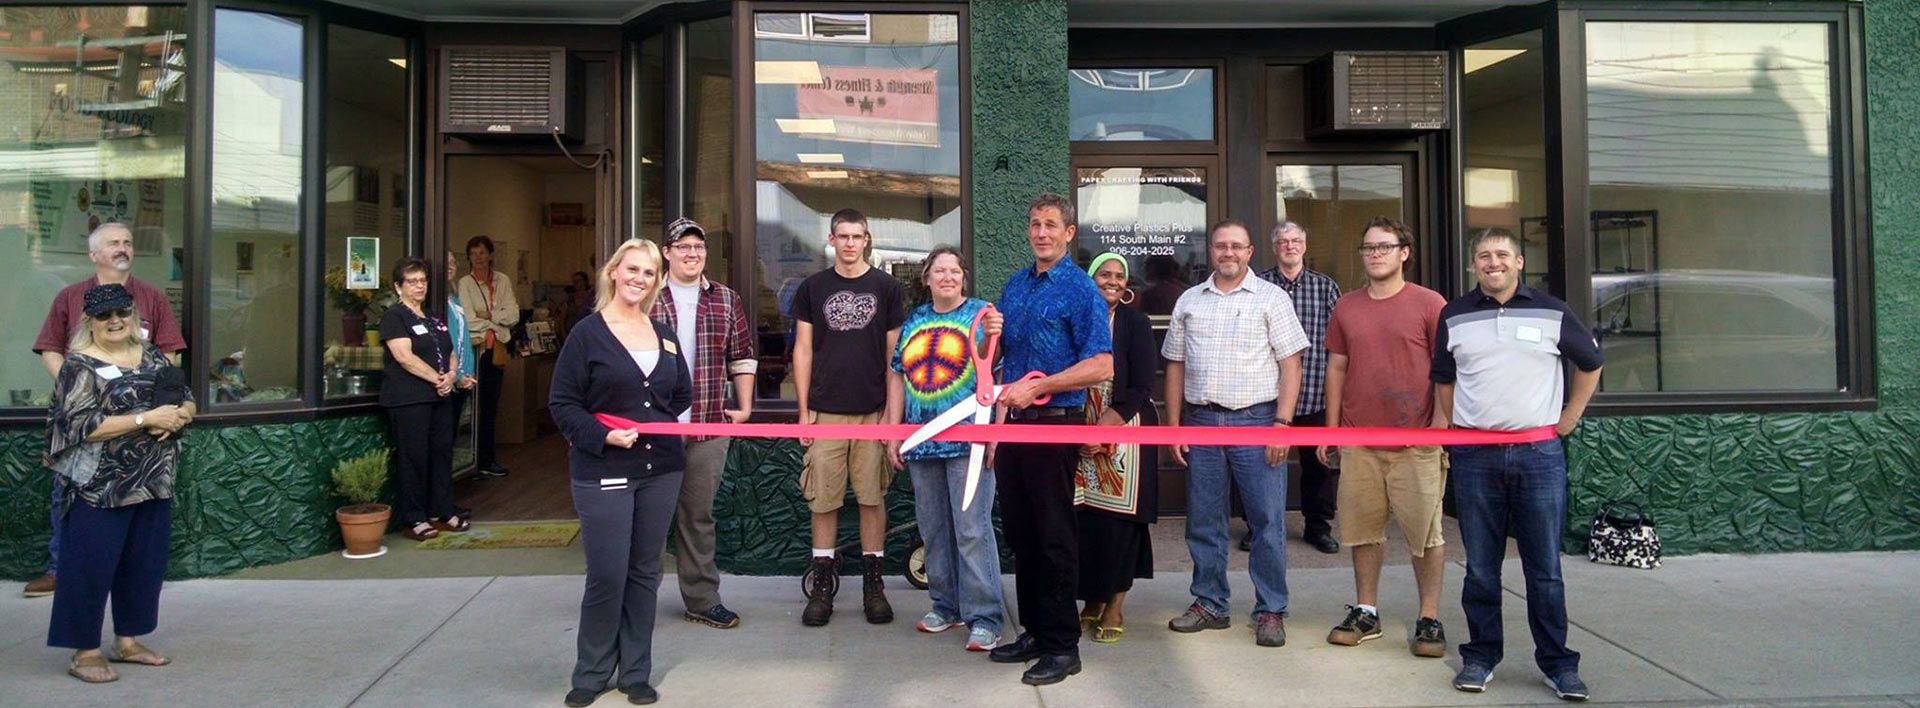 pcf-ribbon-cutting-banner